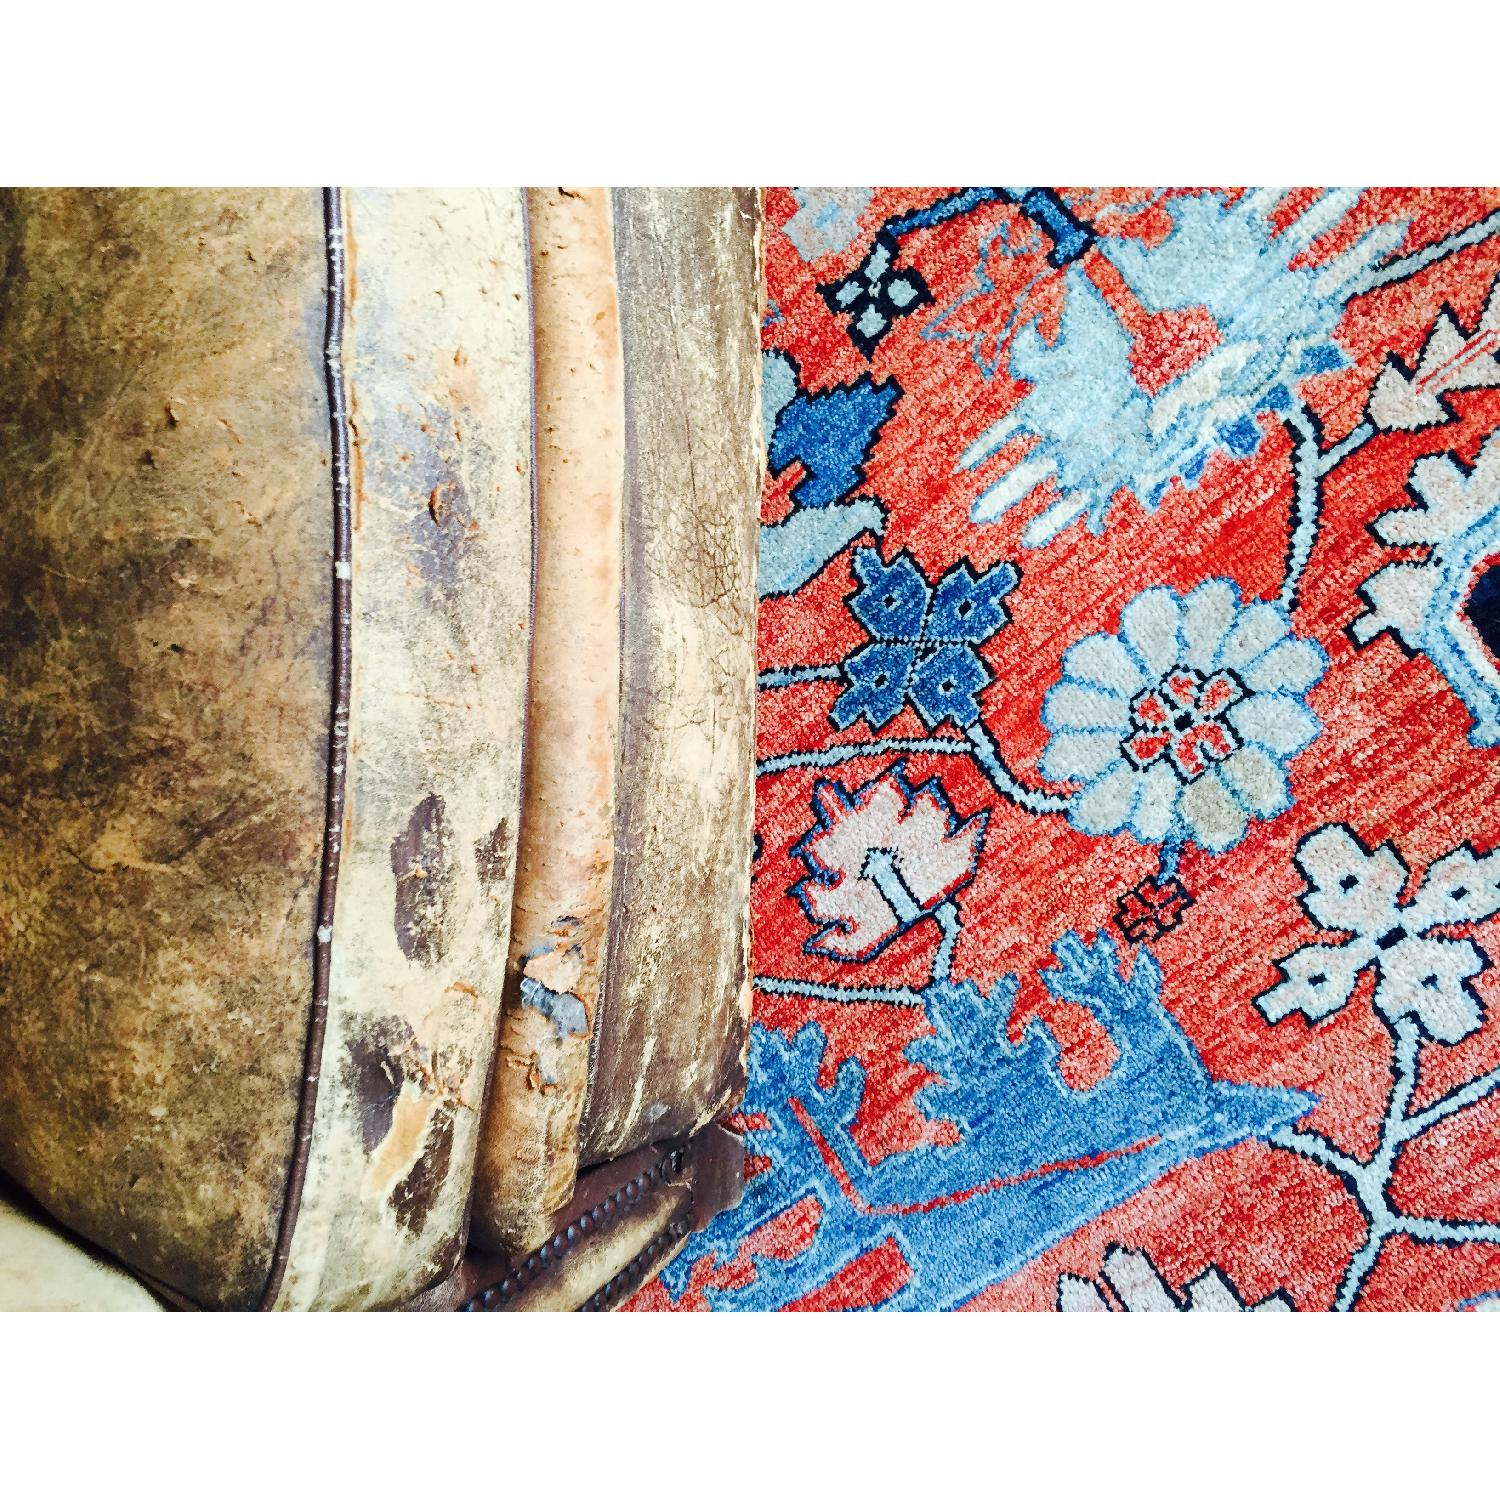 ABC Carpet & Home Woven Legends Turkish Rug - image-5